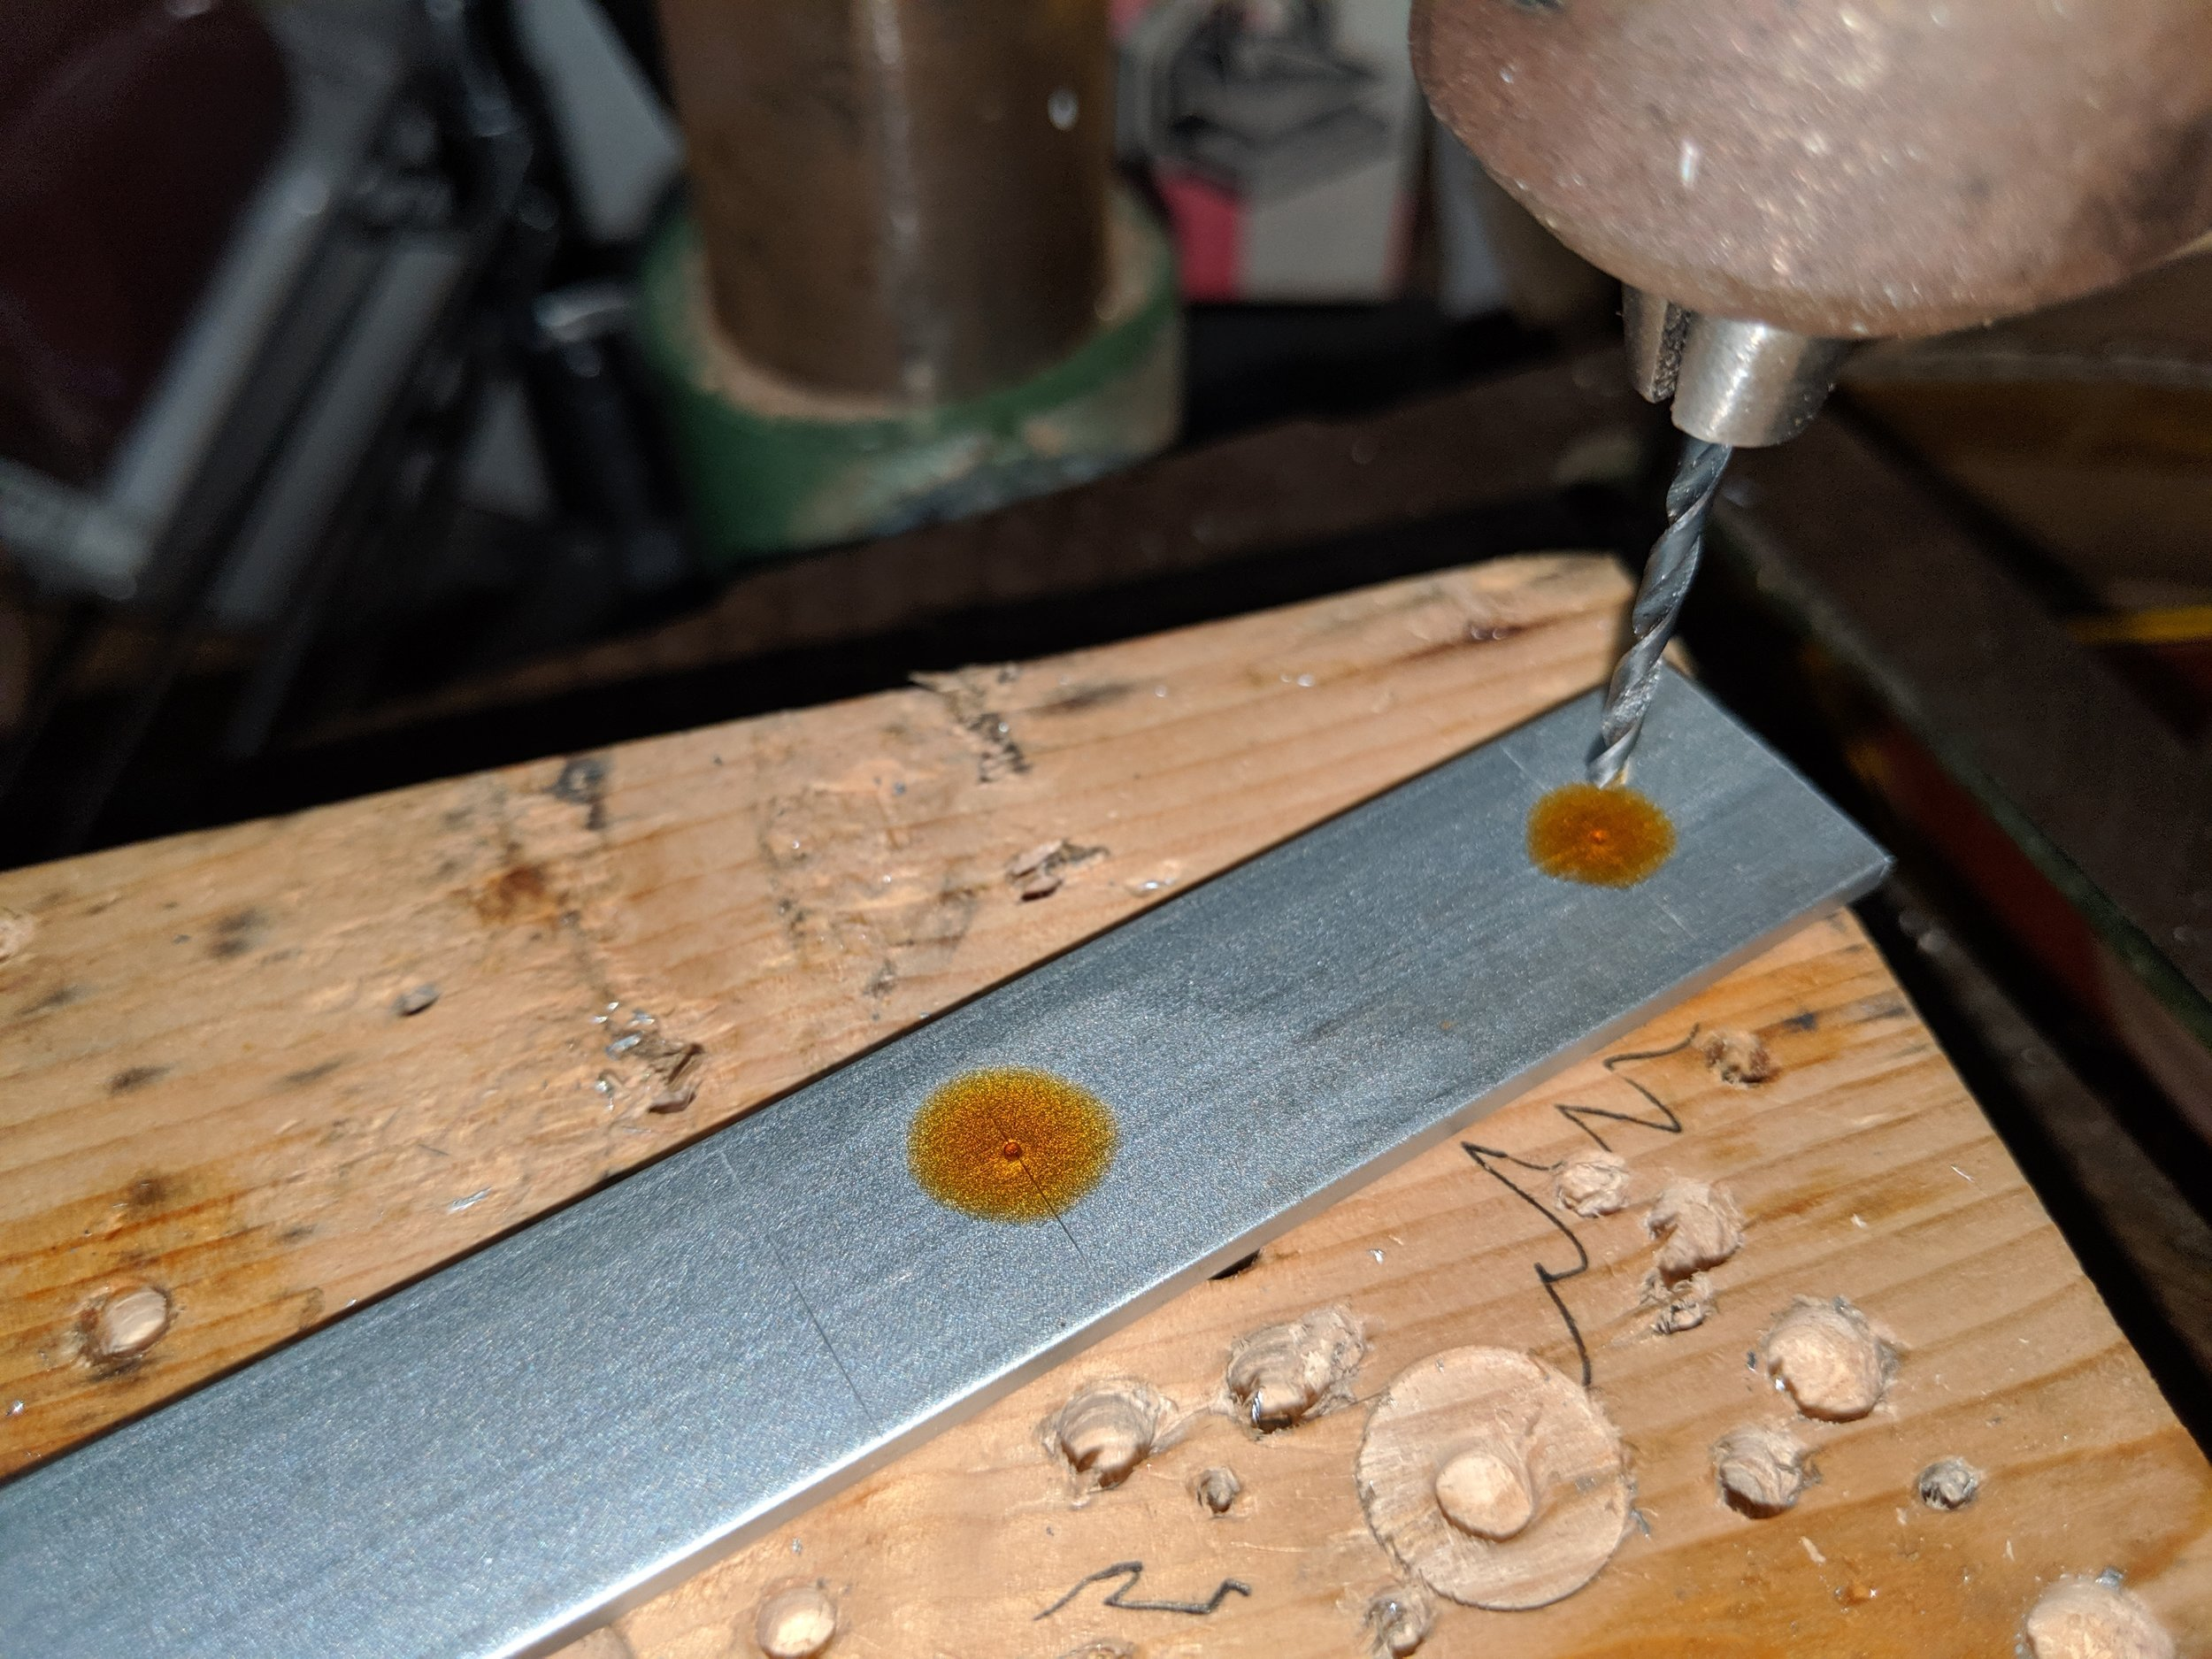 I prefer using cutting oil and making a pilot hole